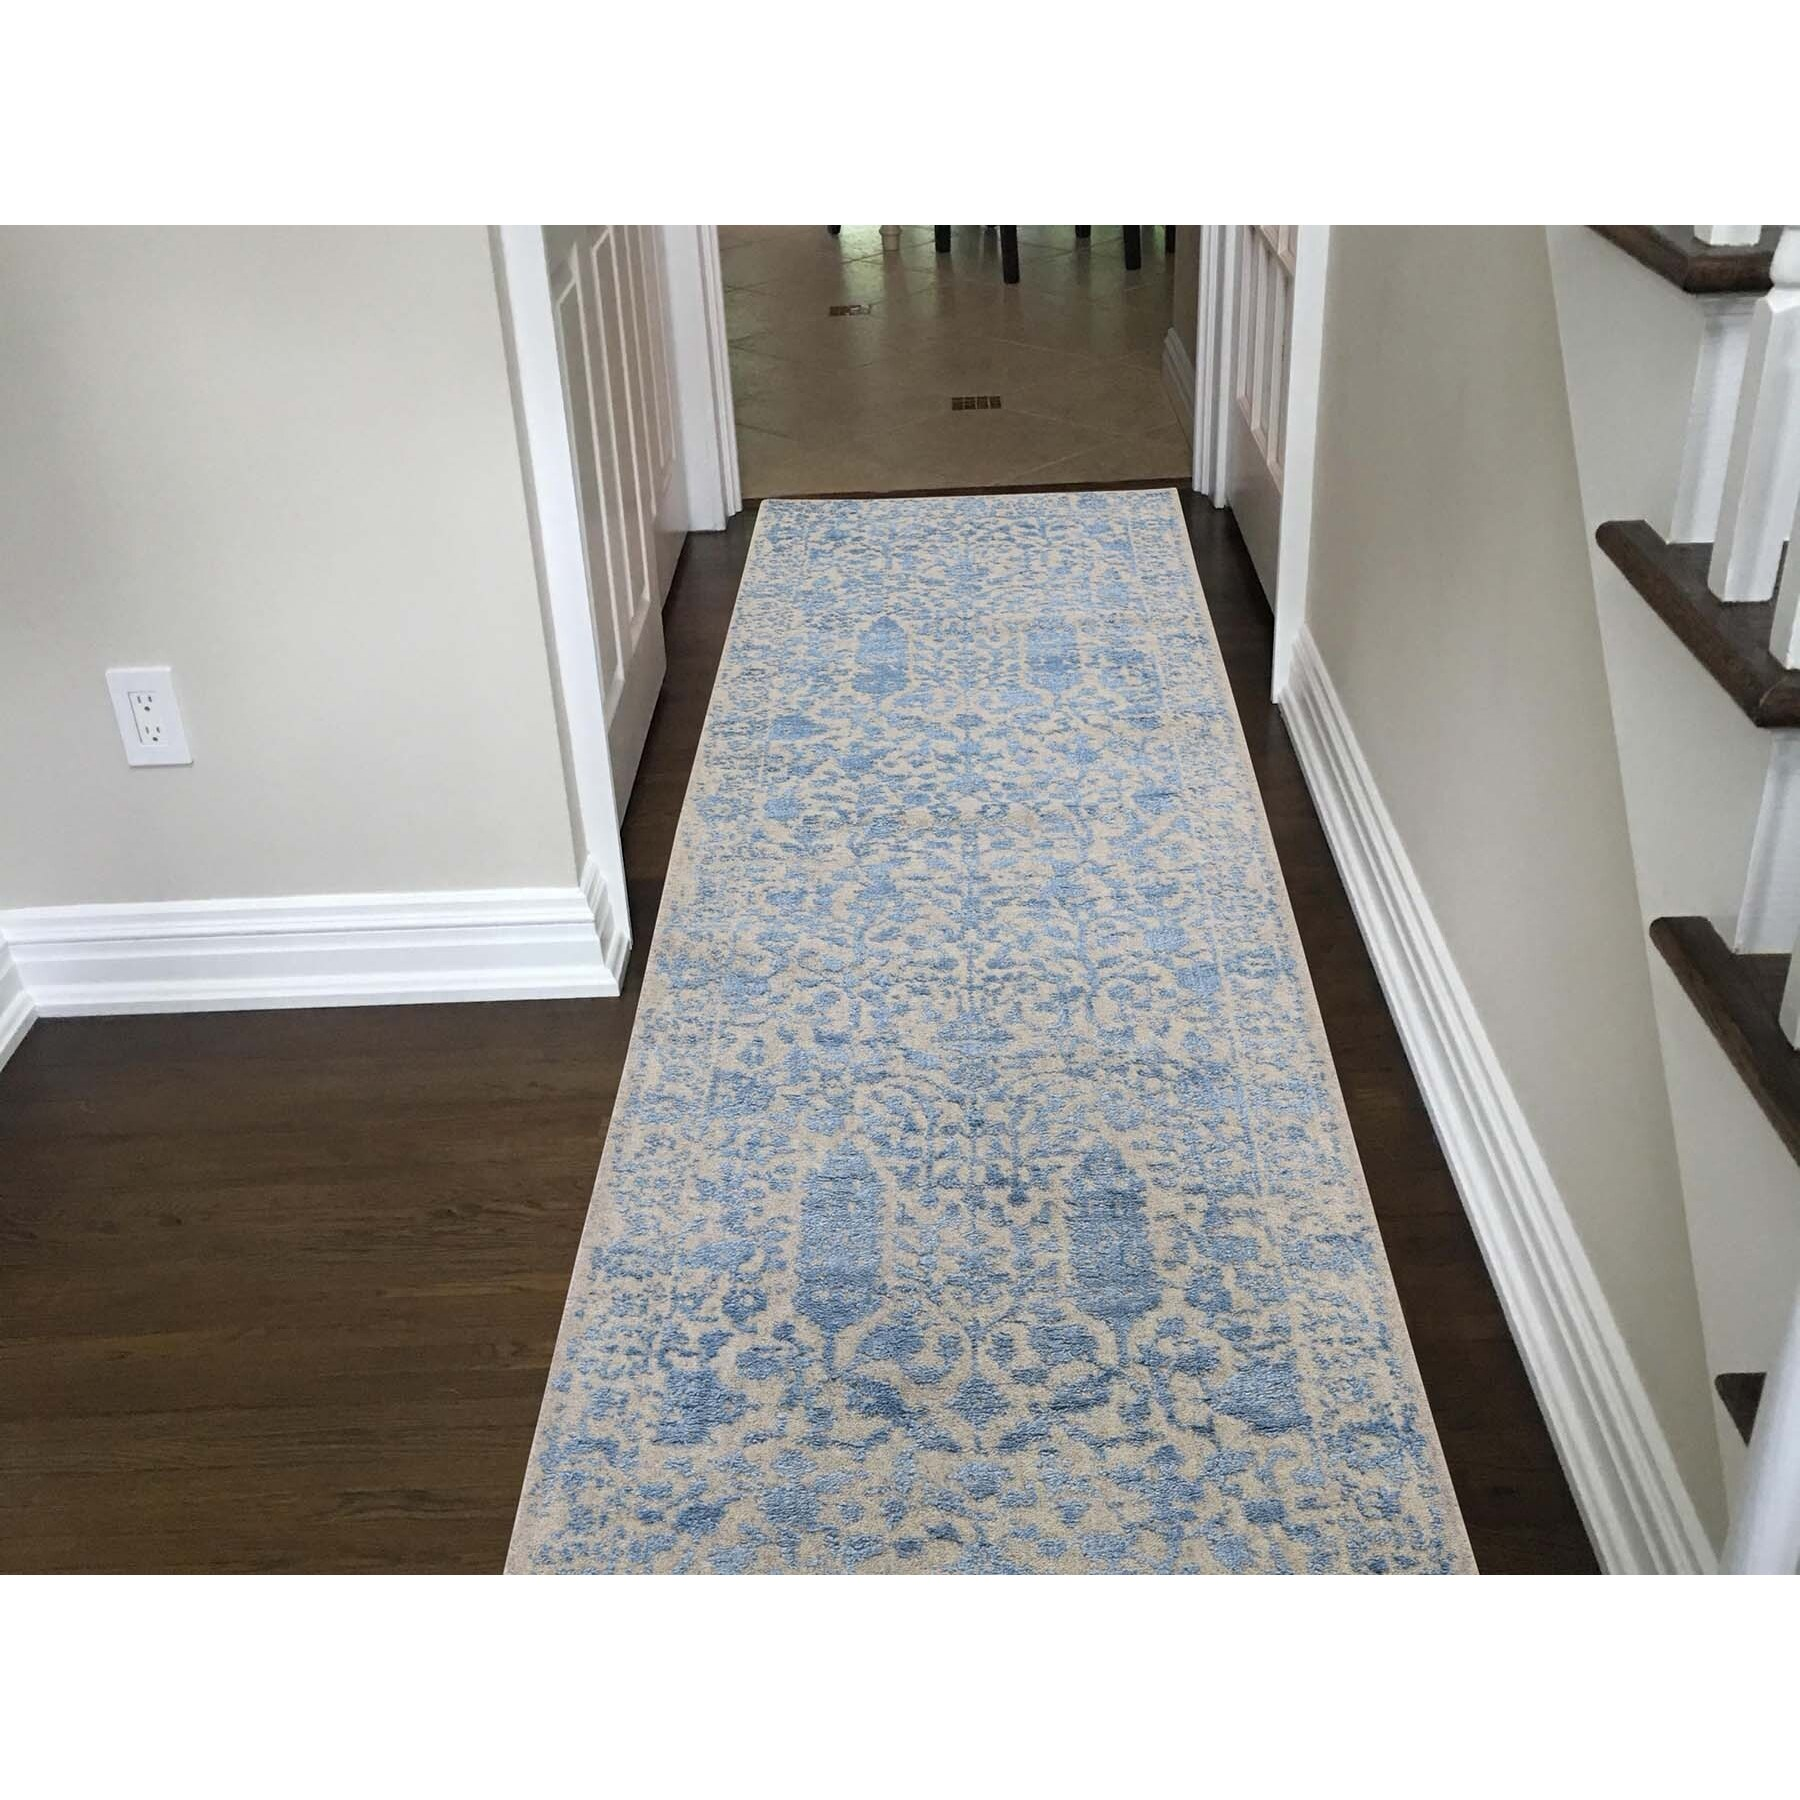 2-5 x10-1  jacquard Hand-Loomed Blue Broken Cypress Tree Design Silken Thick And Plush Runner Oriental Rug